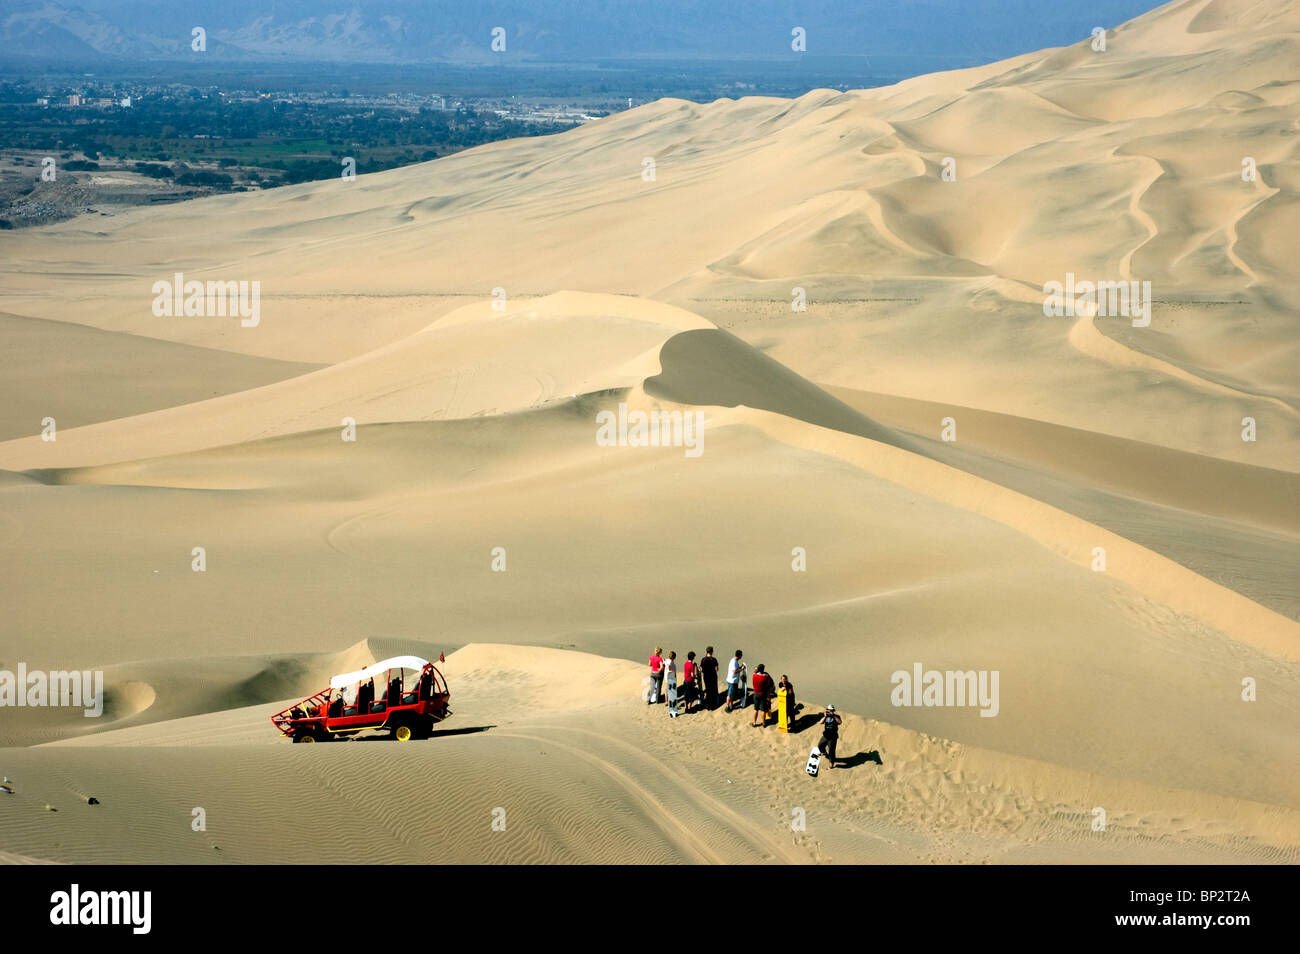 Dune buggies with tourists sand boarding on the vast desert sand dunes near the Huacachina Oasis, Ica, Peru. - Stock Image